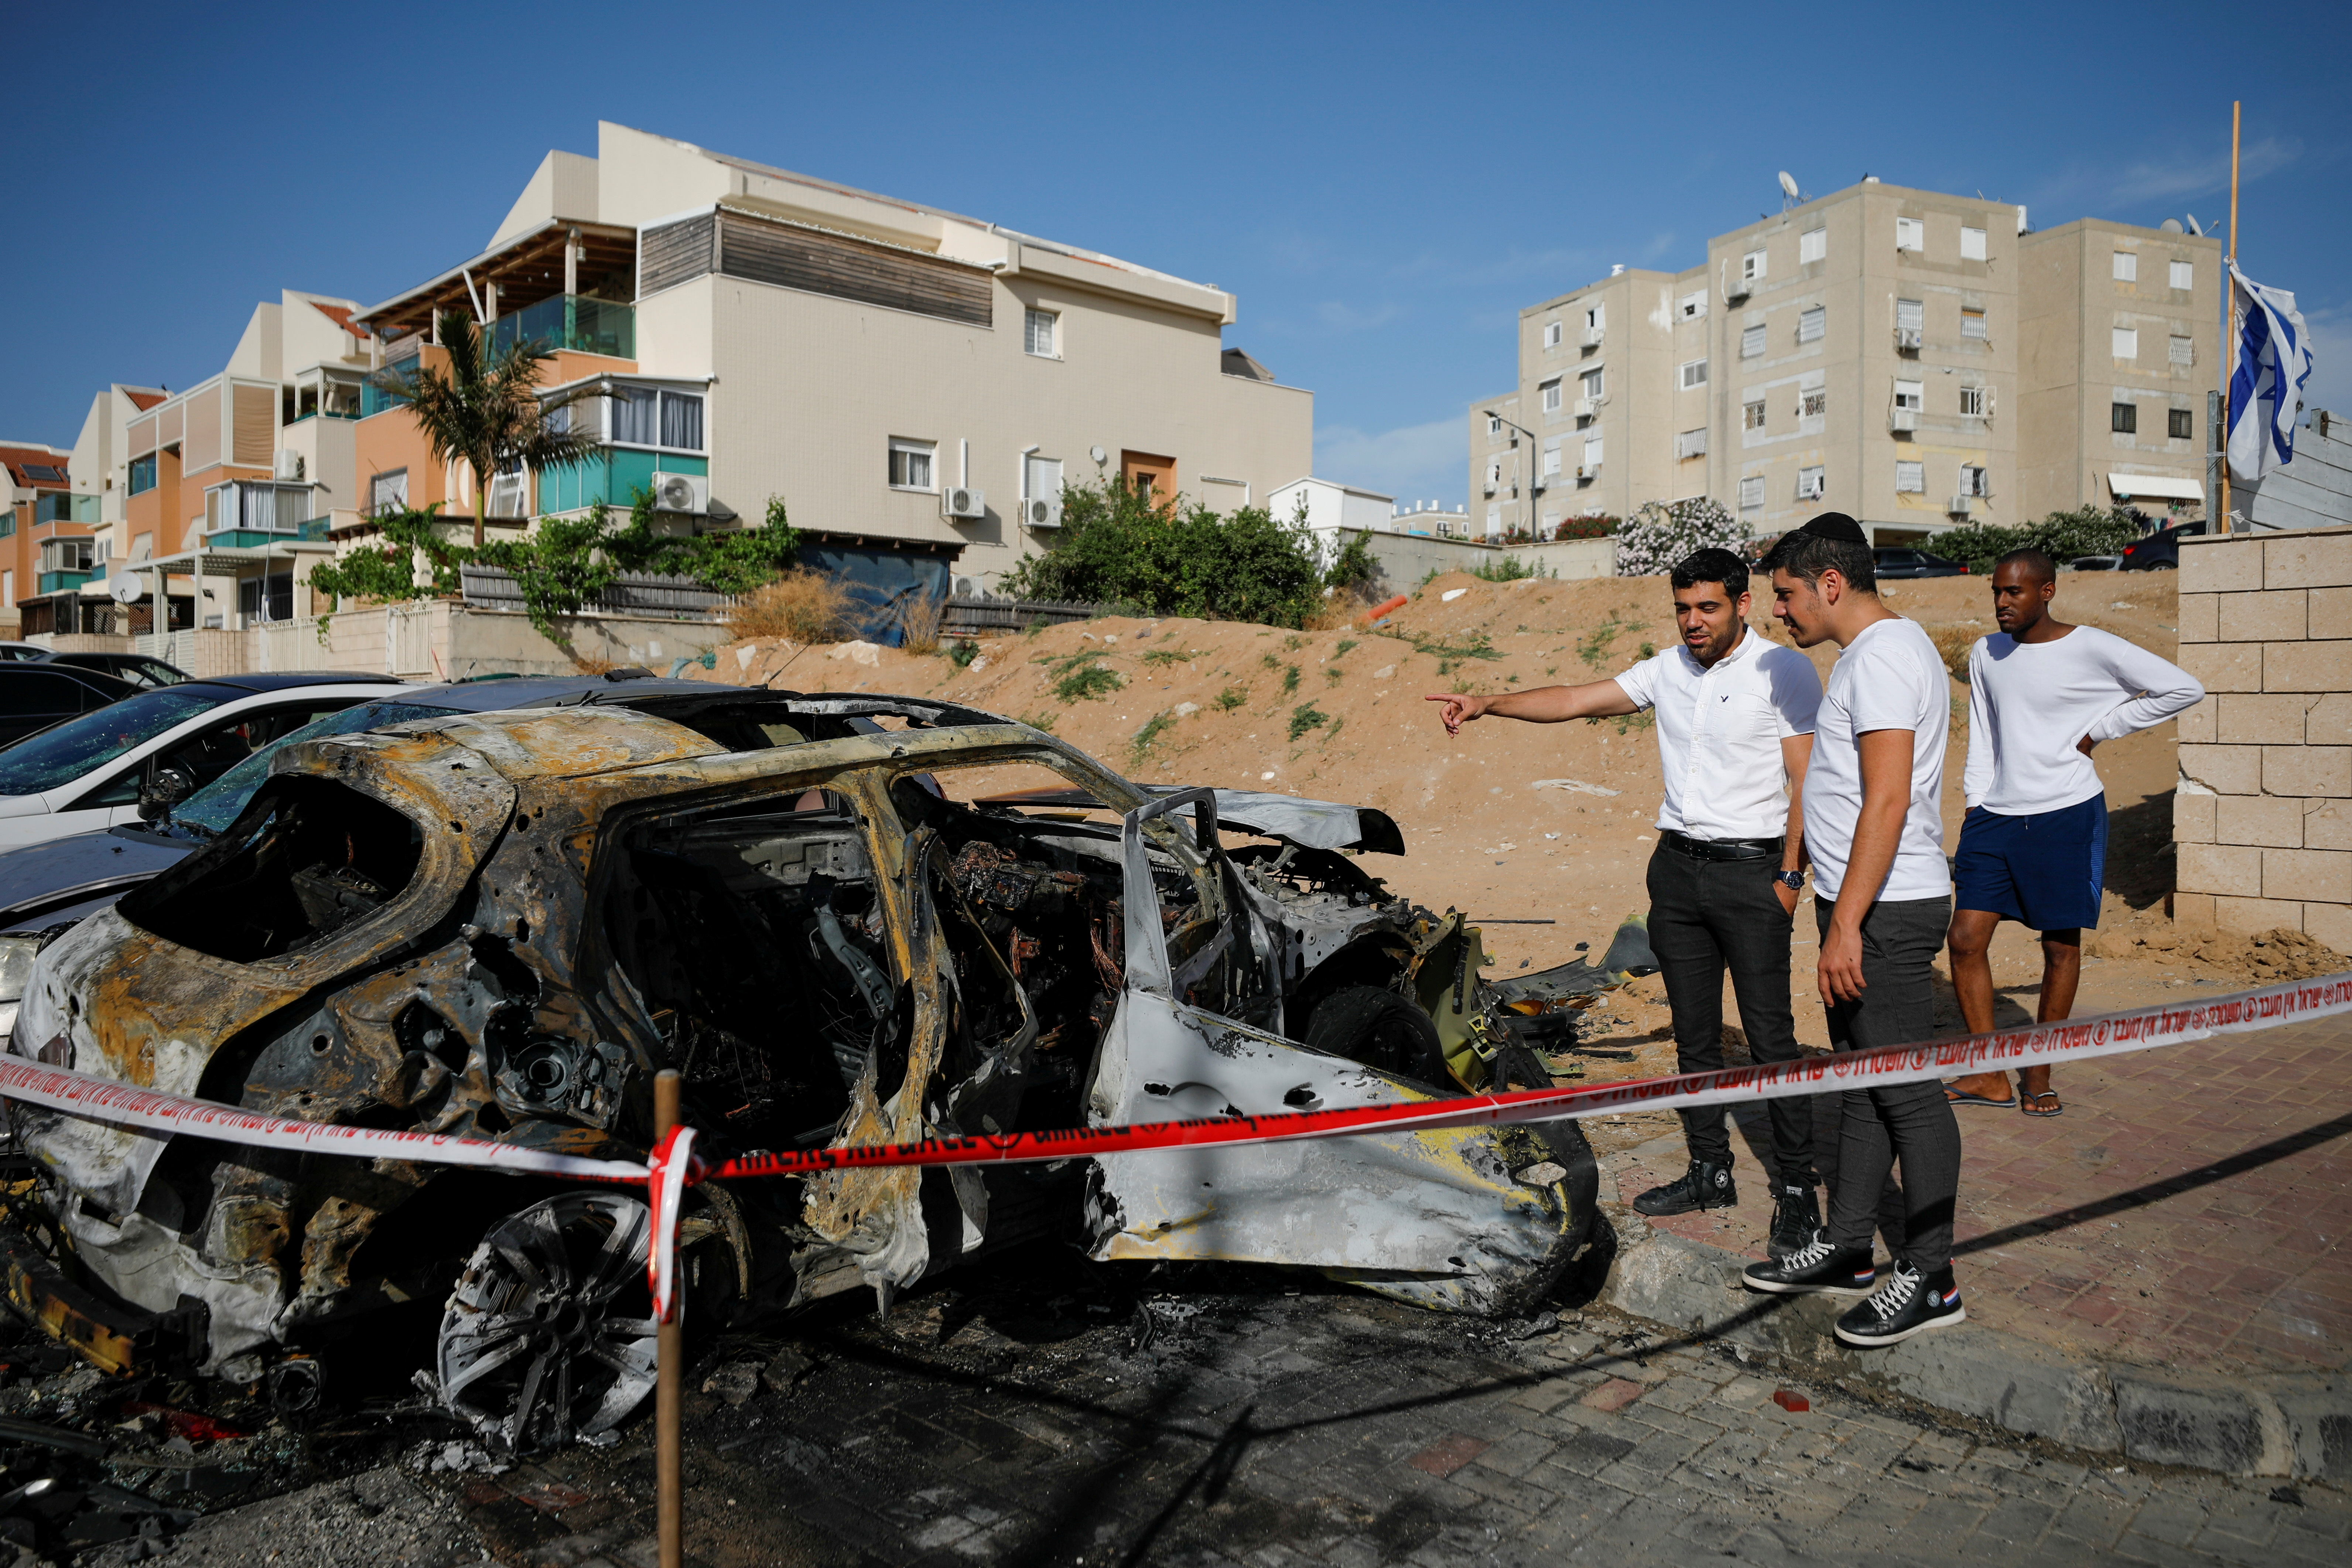 People look at a damaged car at a site where a rocket fired from Gaza landed, as Israeli-Palestinian cross-border violence continues, in Ashkelon, southern Israel, May 16, 2021. REUTERS/Amir Cohen